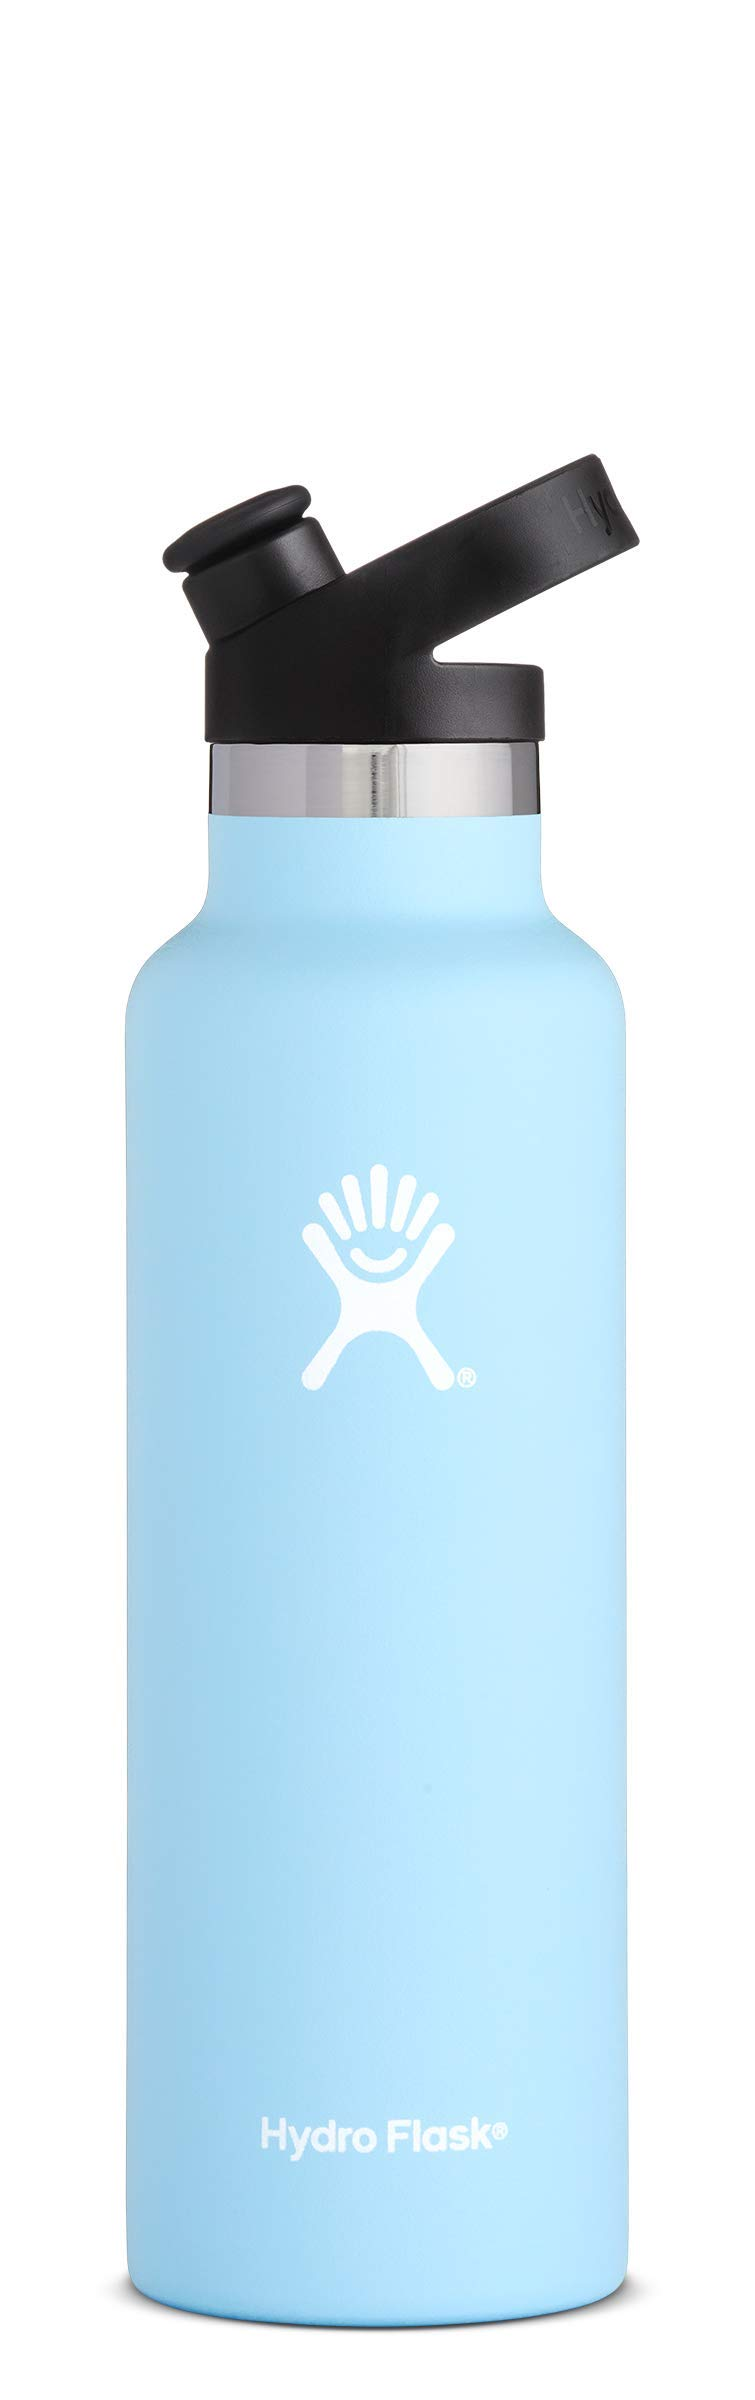 Hydro Flask 21 oz Double Wall Vacuum Insulated Stainless Steel Sports Water Bottle, Standard Mouth with BPA Free Sport Cap, Frost